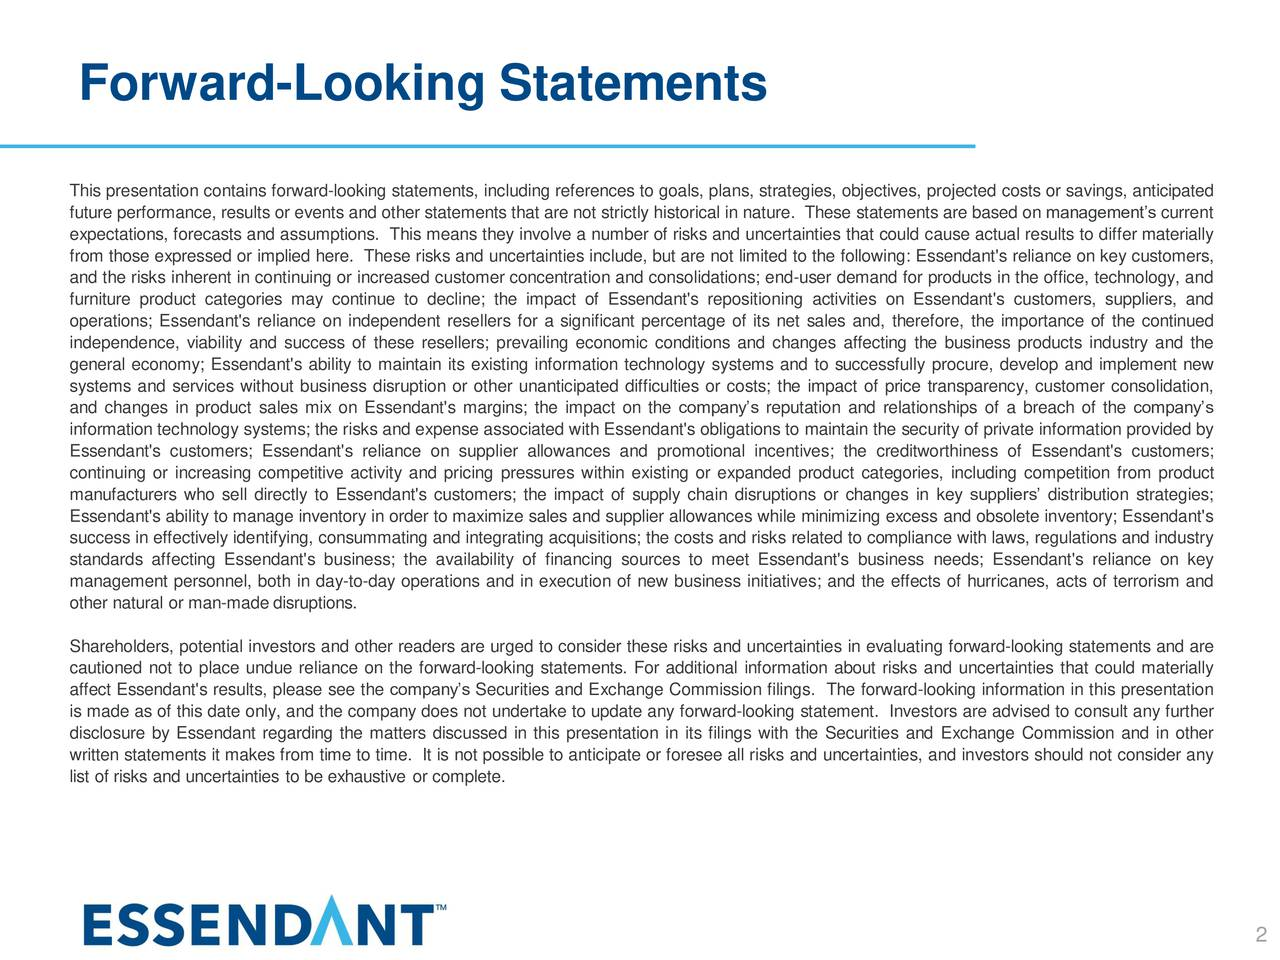 This presentation contains forward-looking statements, including references to goals, plans, strategies, objectives, projected costs or savings, anticipated future performance, results or events and other statements that are not strictly historical in nature. These statements are based on managements current expectations, forecasts and assumptions. This means they involve a number of risks and uncertainties that could cause actual results to differ materially from those expressed or implied here. These risks and uncertainties include, but are not limited to the following: Essendant's reliance on key customers, and the risks inherent in continuing or increased customer concentration and consolidations; end-user demand for products in the office, technology, and furniture product categories may continue to decline; the impact of Essendant's repositioning activities on Essendant's customers, suppliers, and operations; Essendant's reliance on independent resellers for a significant percentage of its net sales and, therefore, the importance of the continued independence, viability and success of these resellers; prevailing economic conditions and changes affecting the business products industry and the general economy; Essendant's ability to maintain its existing information technology systems and to successfully procure, develop and implement new systems and services without business disruption or other unanticipated difficulties or costs; the impact of price transparency, customer consolidation, and changes in product sales mix on Essendant's margins; the impact on the companys reputation and relationships of a breach of the companys information technology systems; the risks and expense associated with Essendant's obligations to maintain the security of private information provided by Essendant's customers; Essendant's reliance on supplier allowances and promotional incentives; the creditworthiness of Essendant's customers; continuing or increasing competitive activity